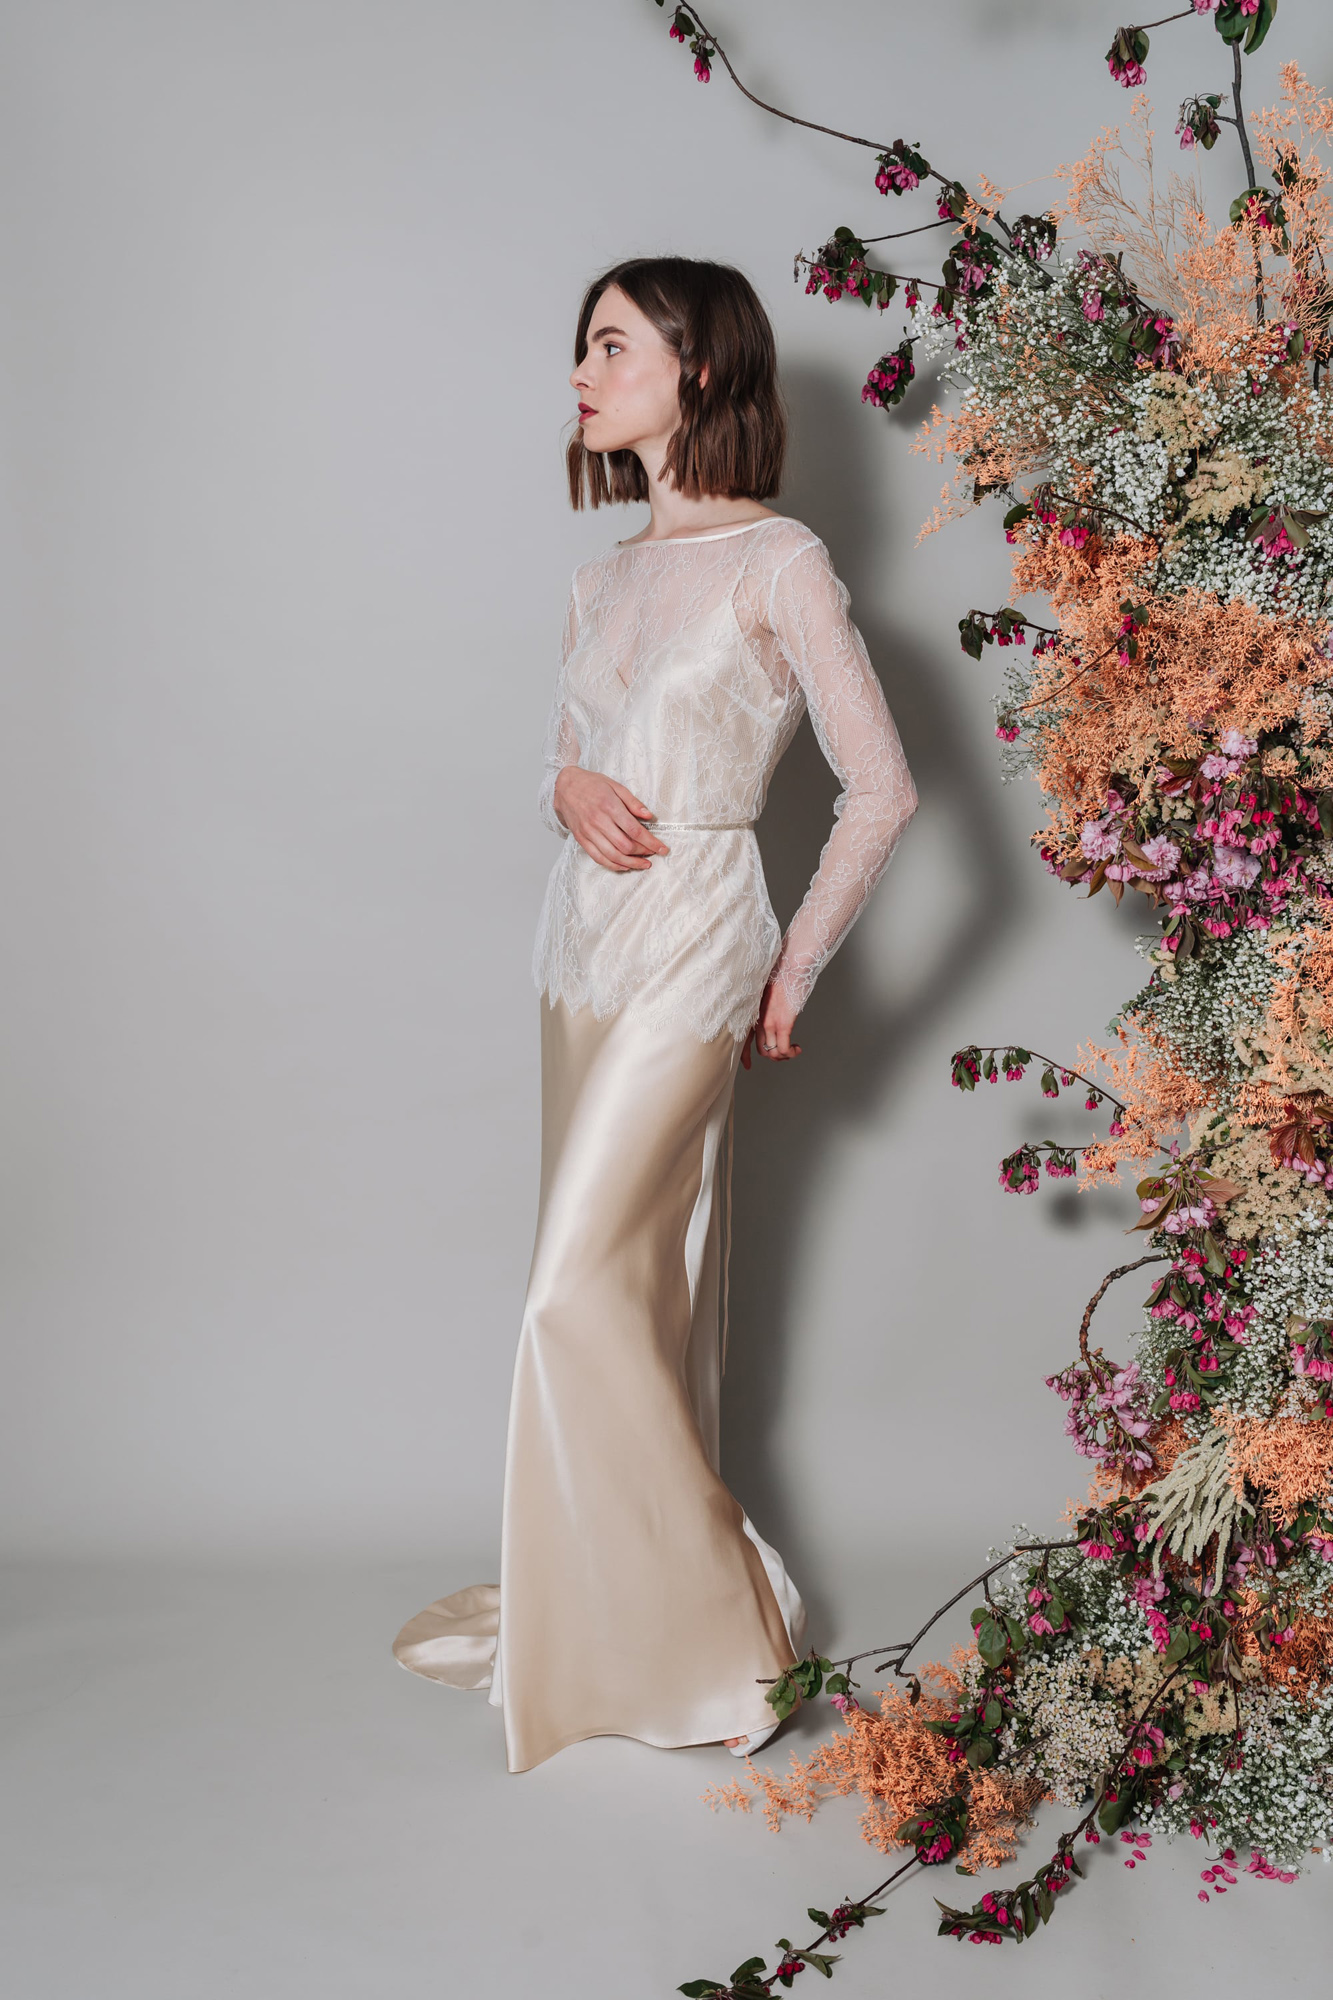 Kate-Beaumont-Sheffield-Thistle-Bridal-Separates-Two-Piece-Lace-Silk-Wedding-Gown-5.jpg